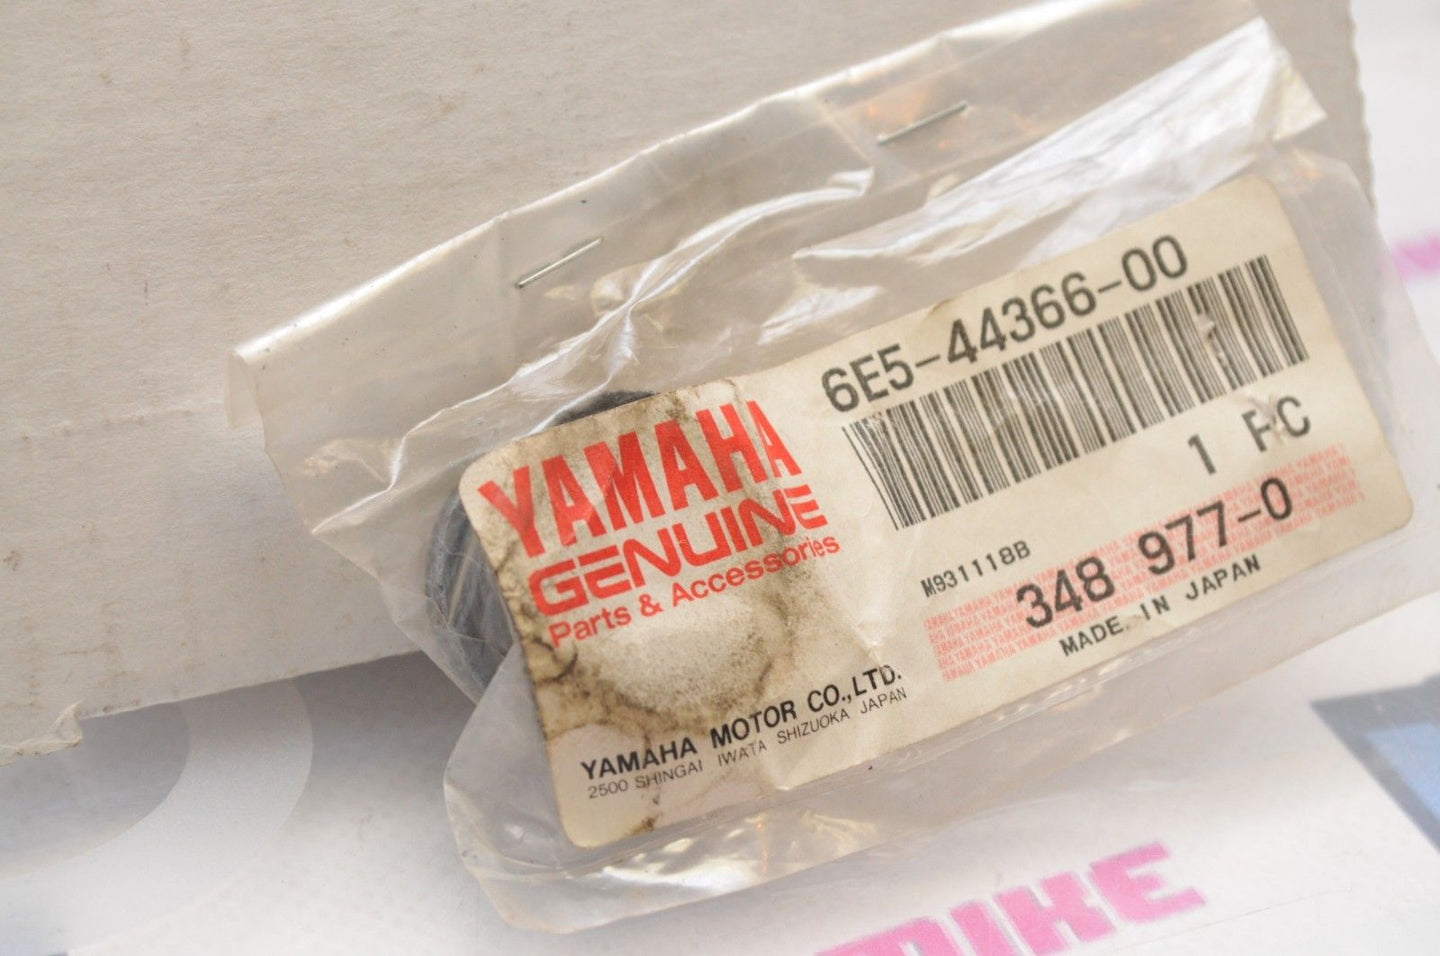 NEW NOS OEM YAMAHA 6E5-44366-00-00 WATER SEAL 115 150 200 225 +HP OUTBOARD MOTOR